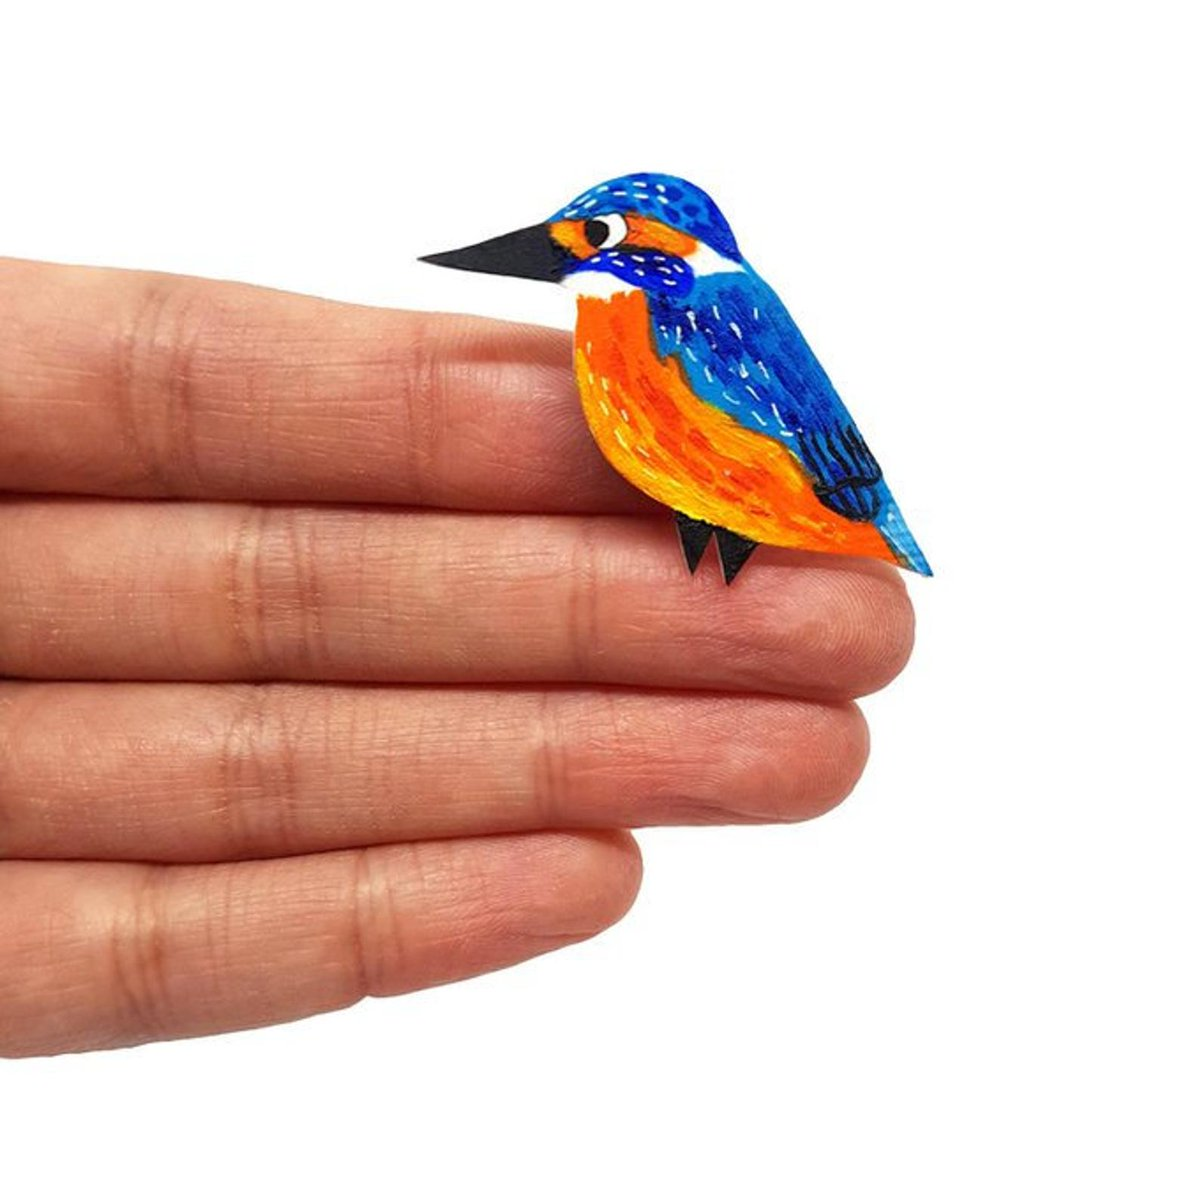 Good morning #elevenseshour How are you? I am busy restocking my shop and it includes this beautiful kingfisher badge. More birdies in stock.  #etsy #handmade #shopsmall #thursdaymorning #thursdayvibes #gifts #nature #kingfisher #bird #badge #jewellery